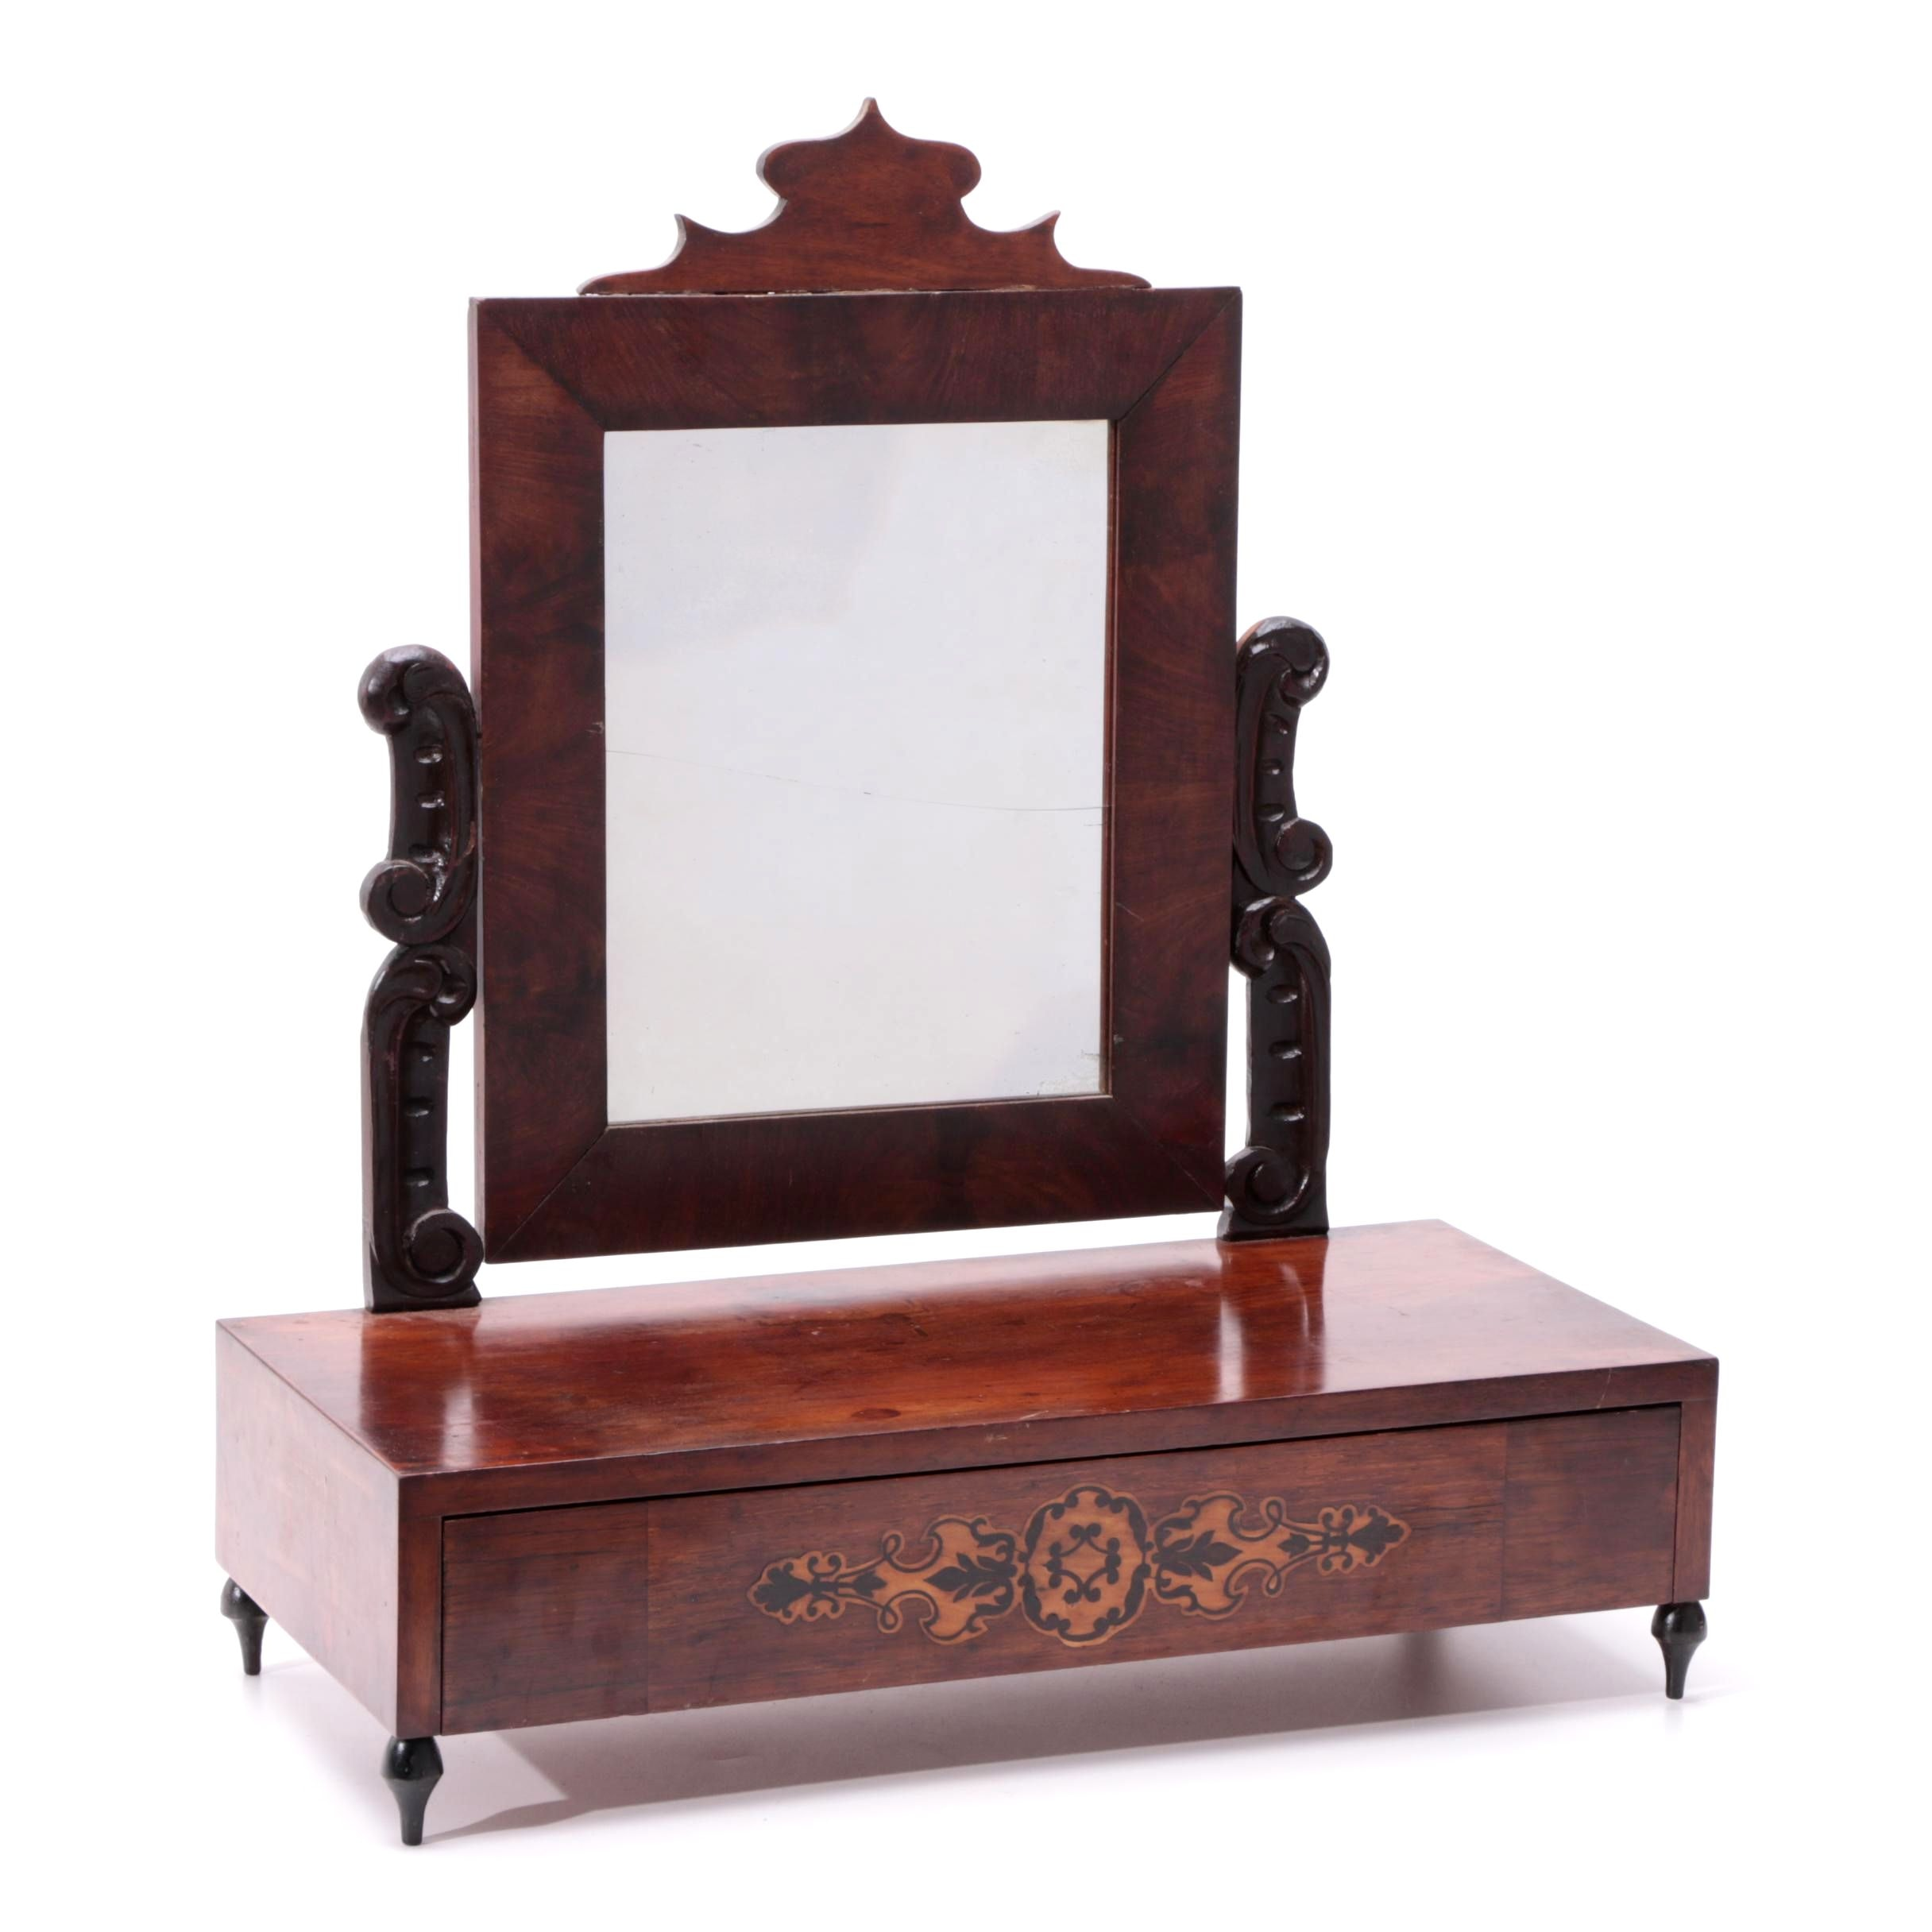 Mahogany and Marquetry Shaving Stand, Third Quarter 19th Century